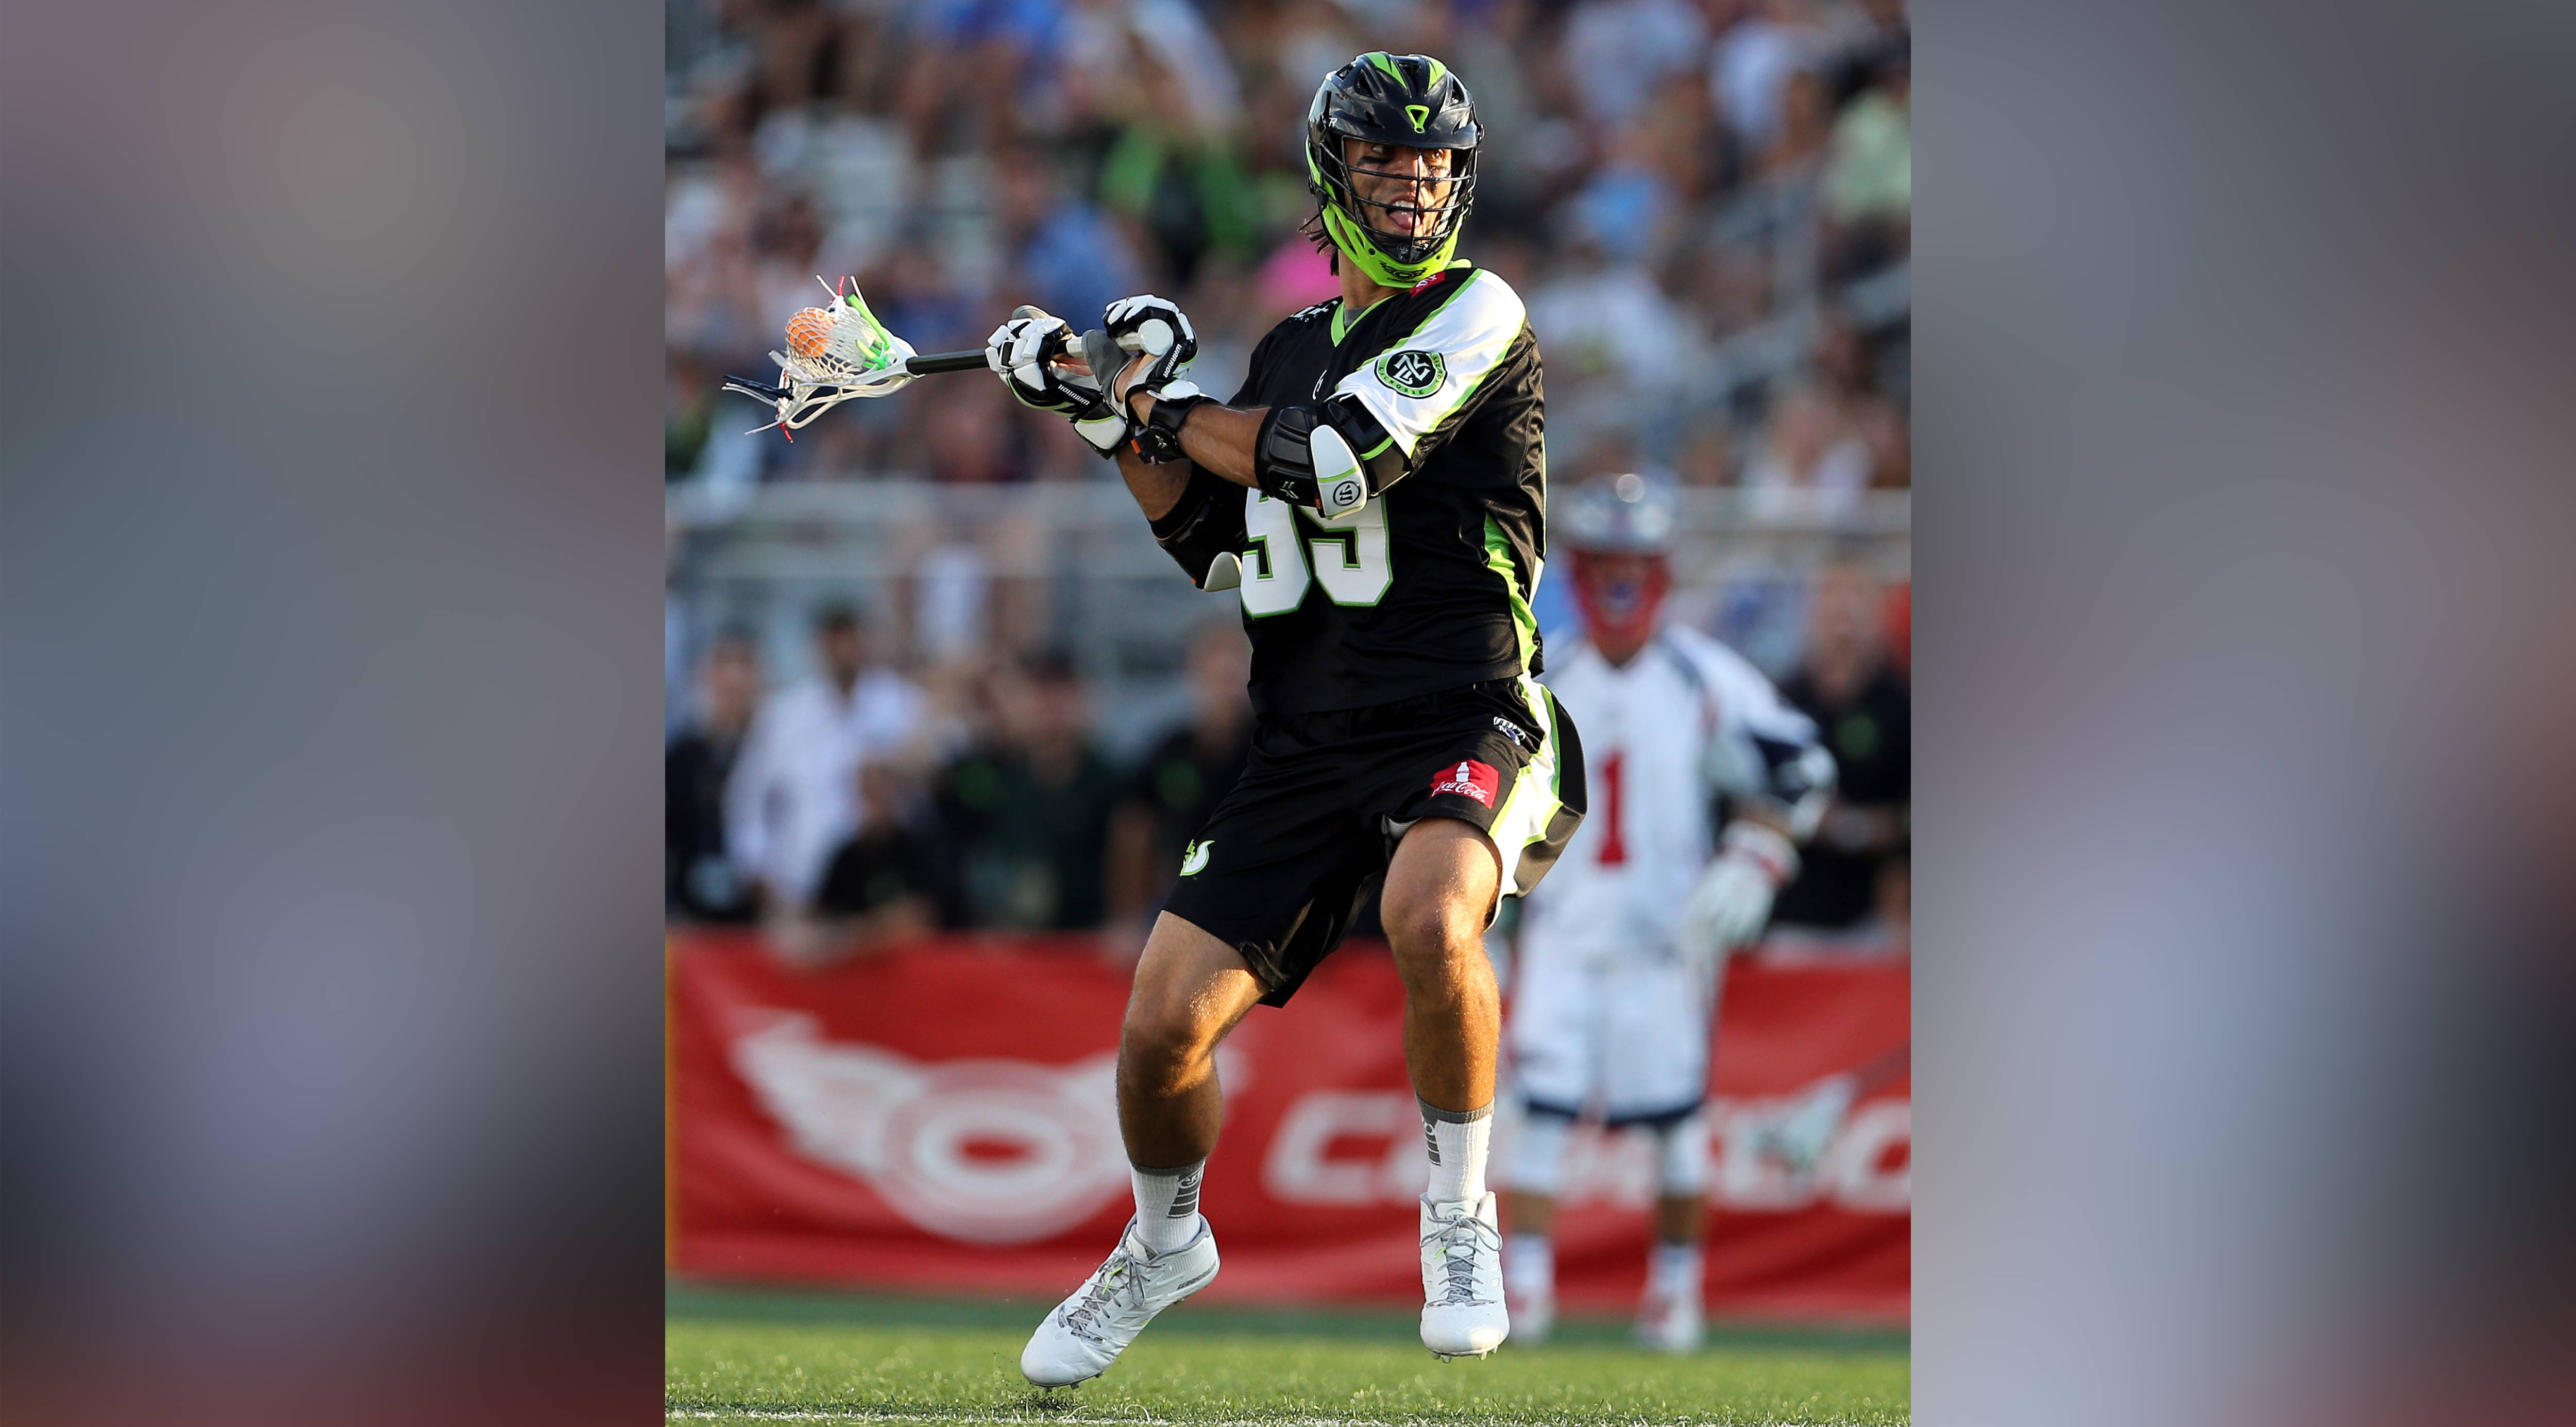 lacrosse champ paul rabil 39 s 3 step conditioning workout muscle fitness. Black Bedroom Furniture Sets. Home Design Ideas